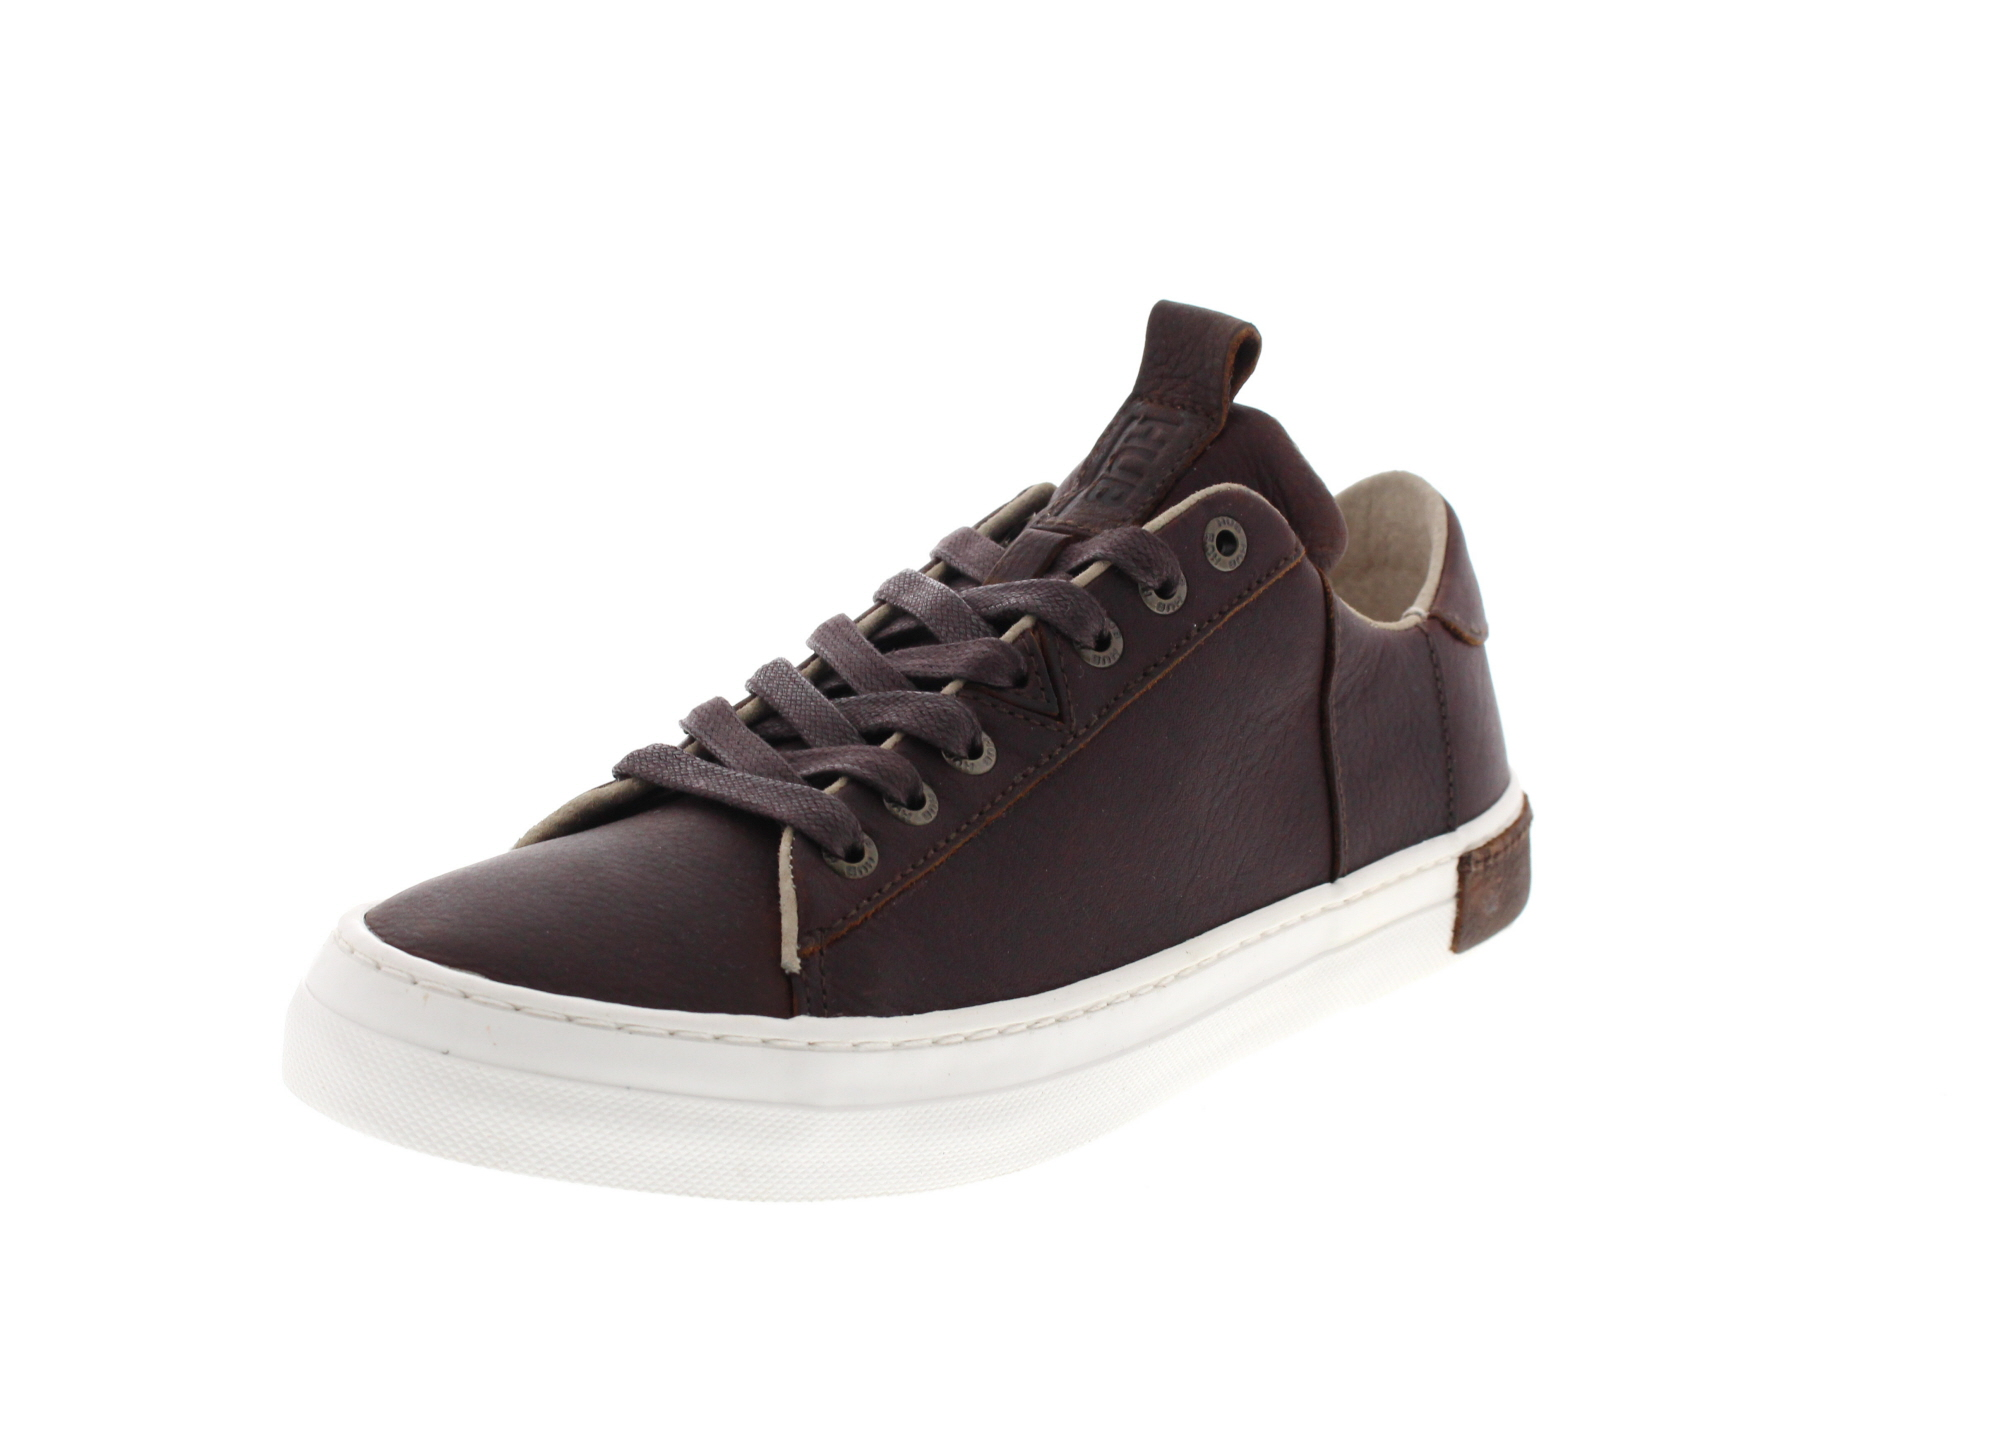 HUB FOOTWEAR Sneakers - HOOK L30 MERLINS - dark brown0-6727